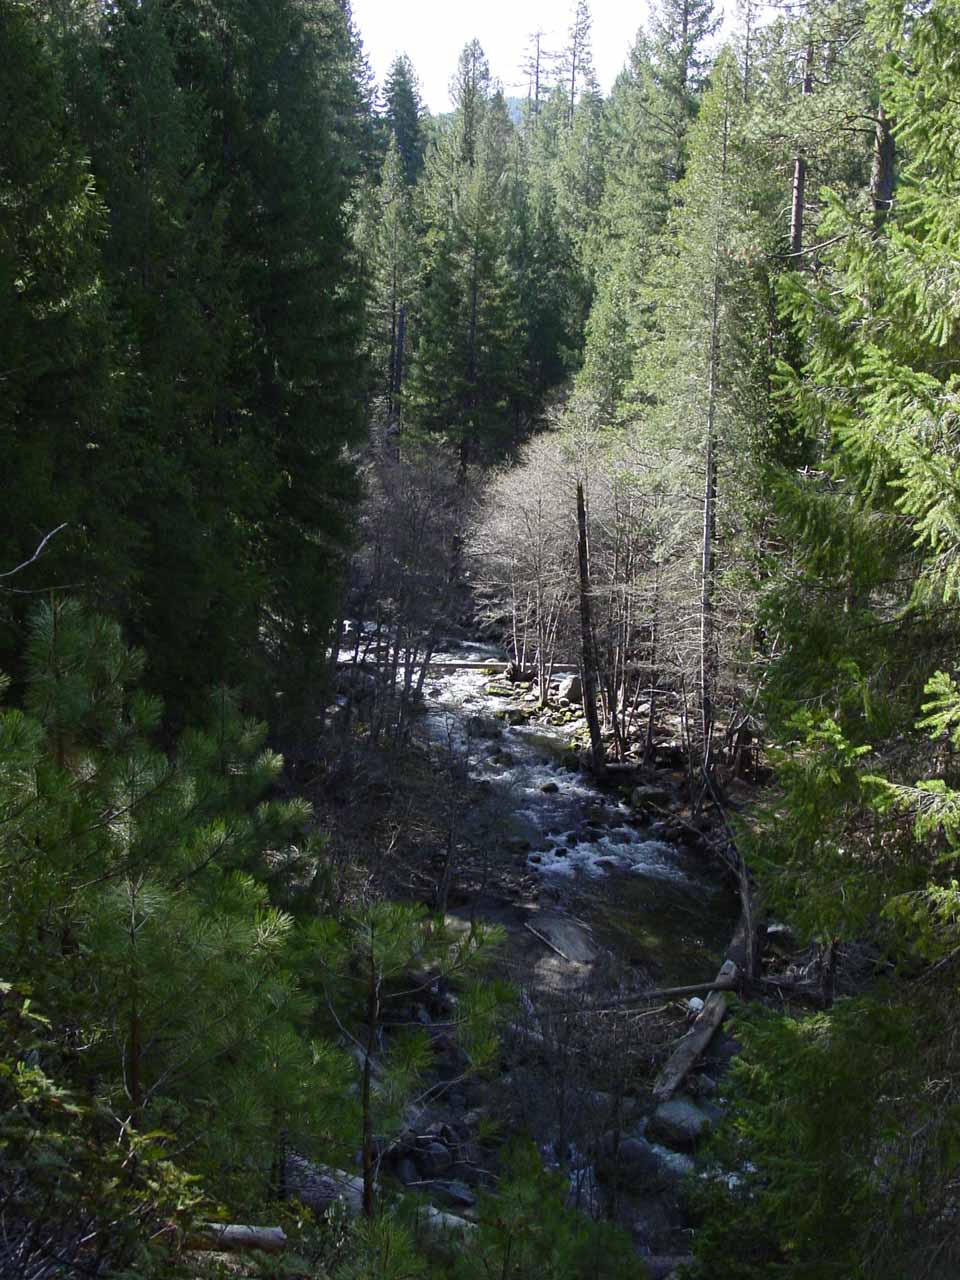 Looking down at the South Fork Tuolumne River in 2004. Notice the difference in the scenery back then compared to 2017 in the preceding photo